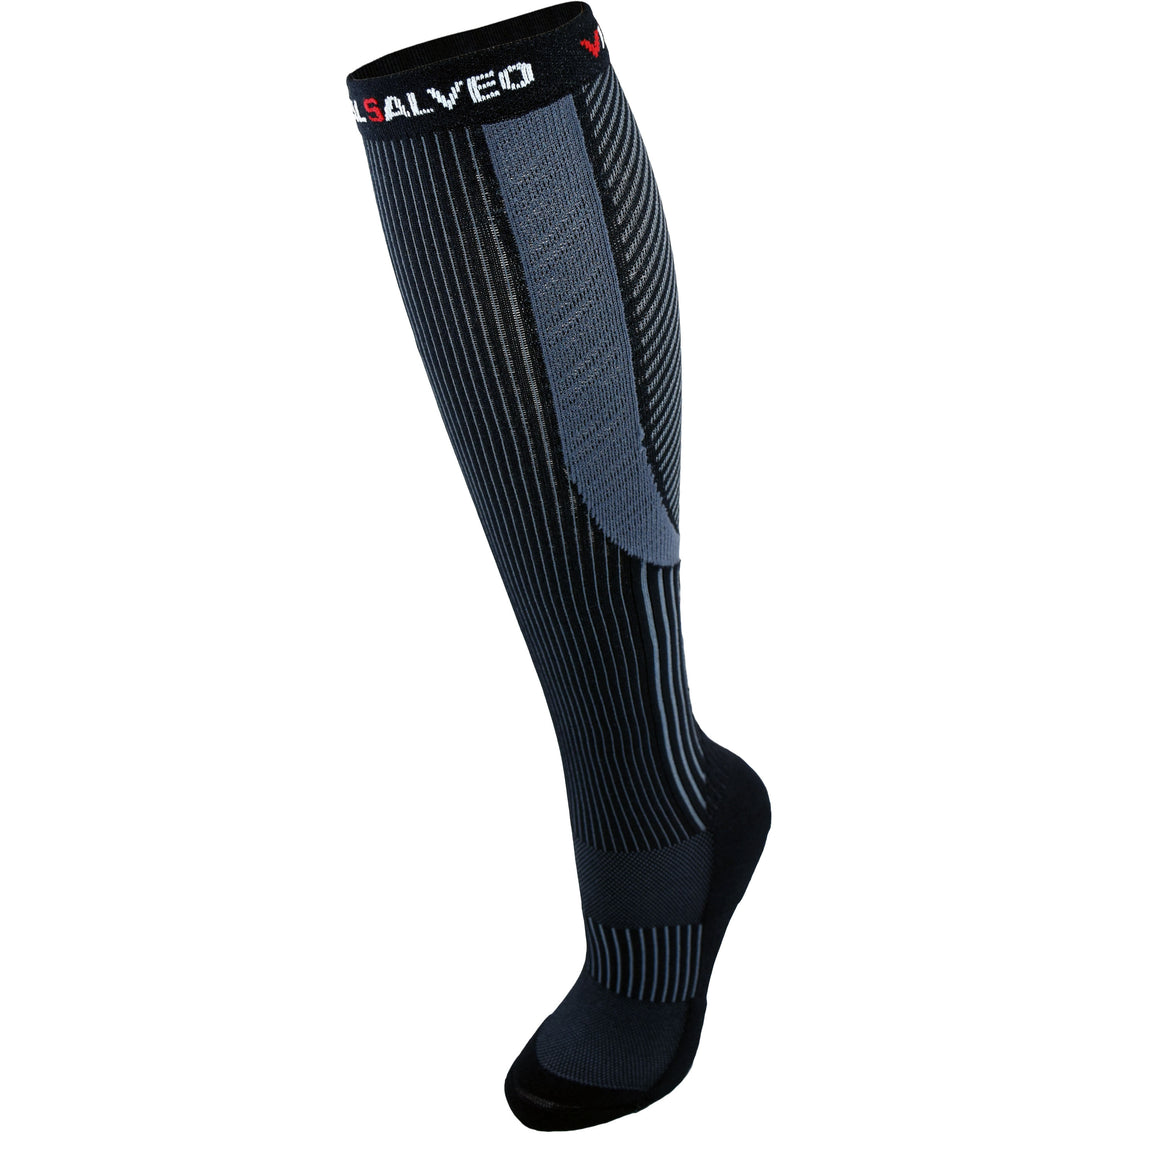 Socks-Germanium Sport Compression Calf Socks /20-30mmHg - Vital Salveo